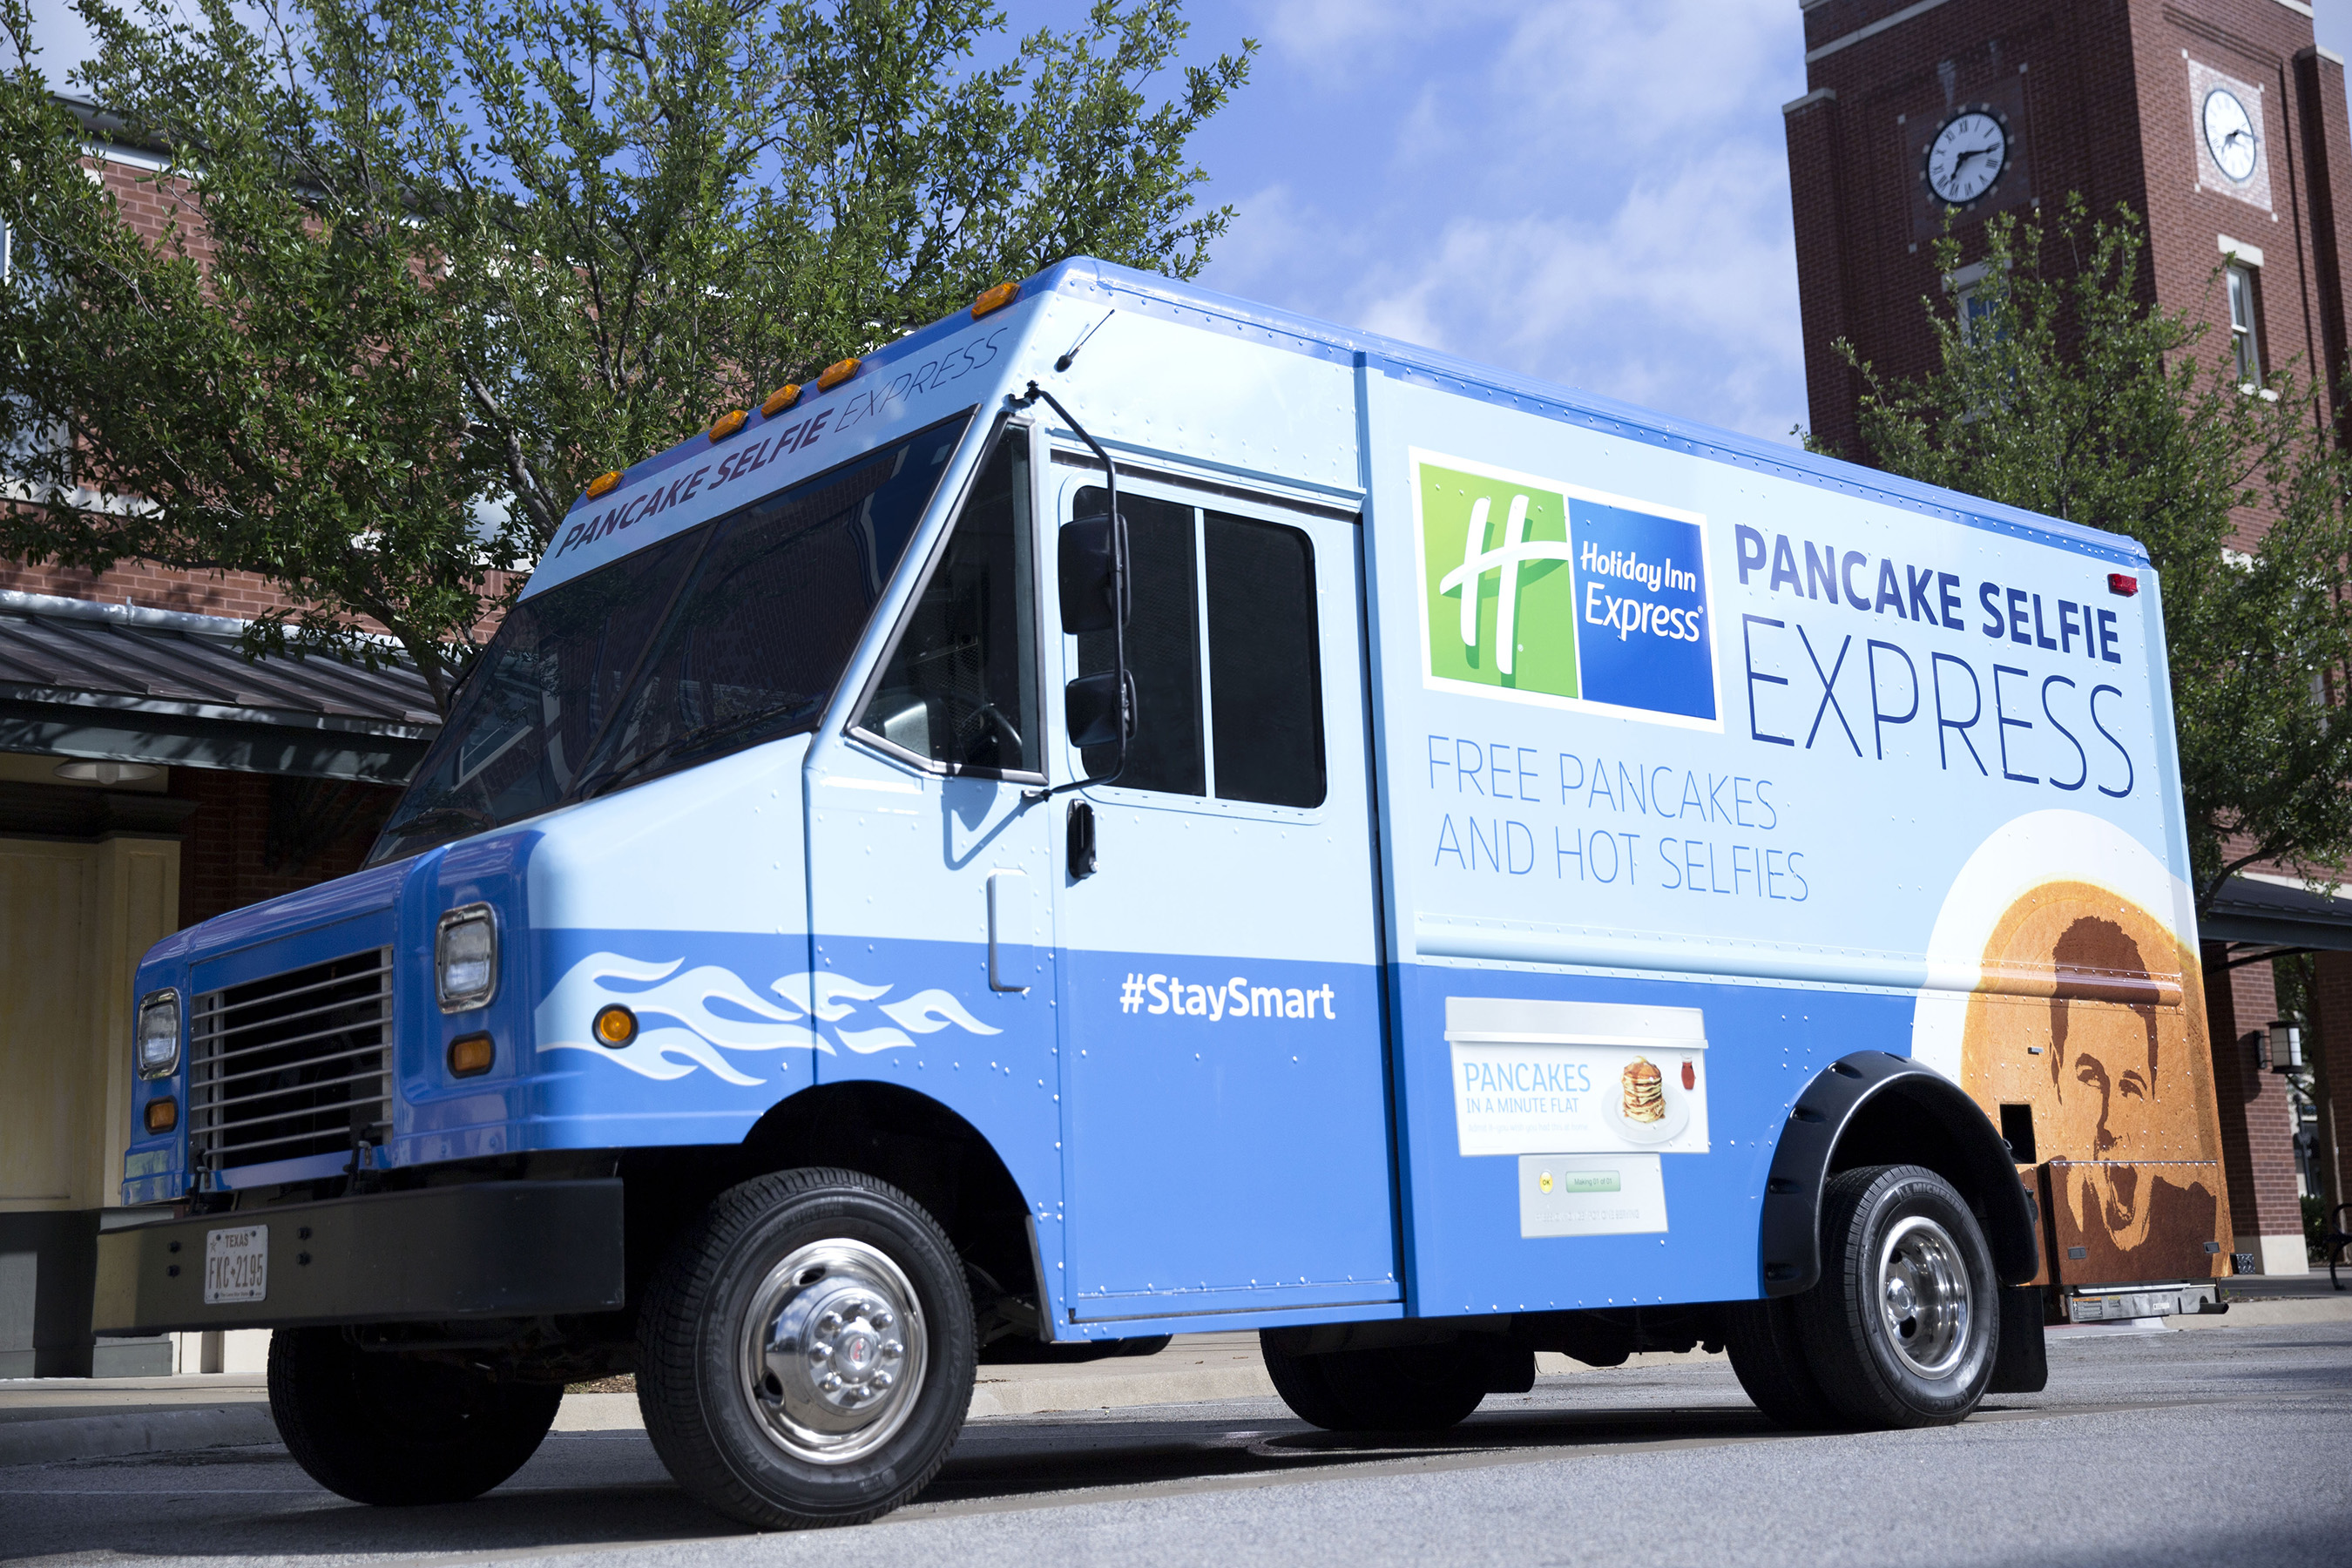 Holiday Inn Express® Brand Gets Football Fans Game Ready With Latest Pancake Selfie Express Tour